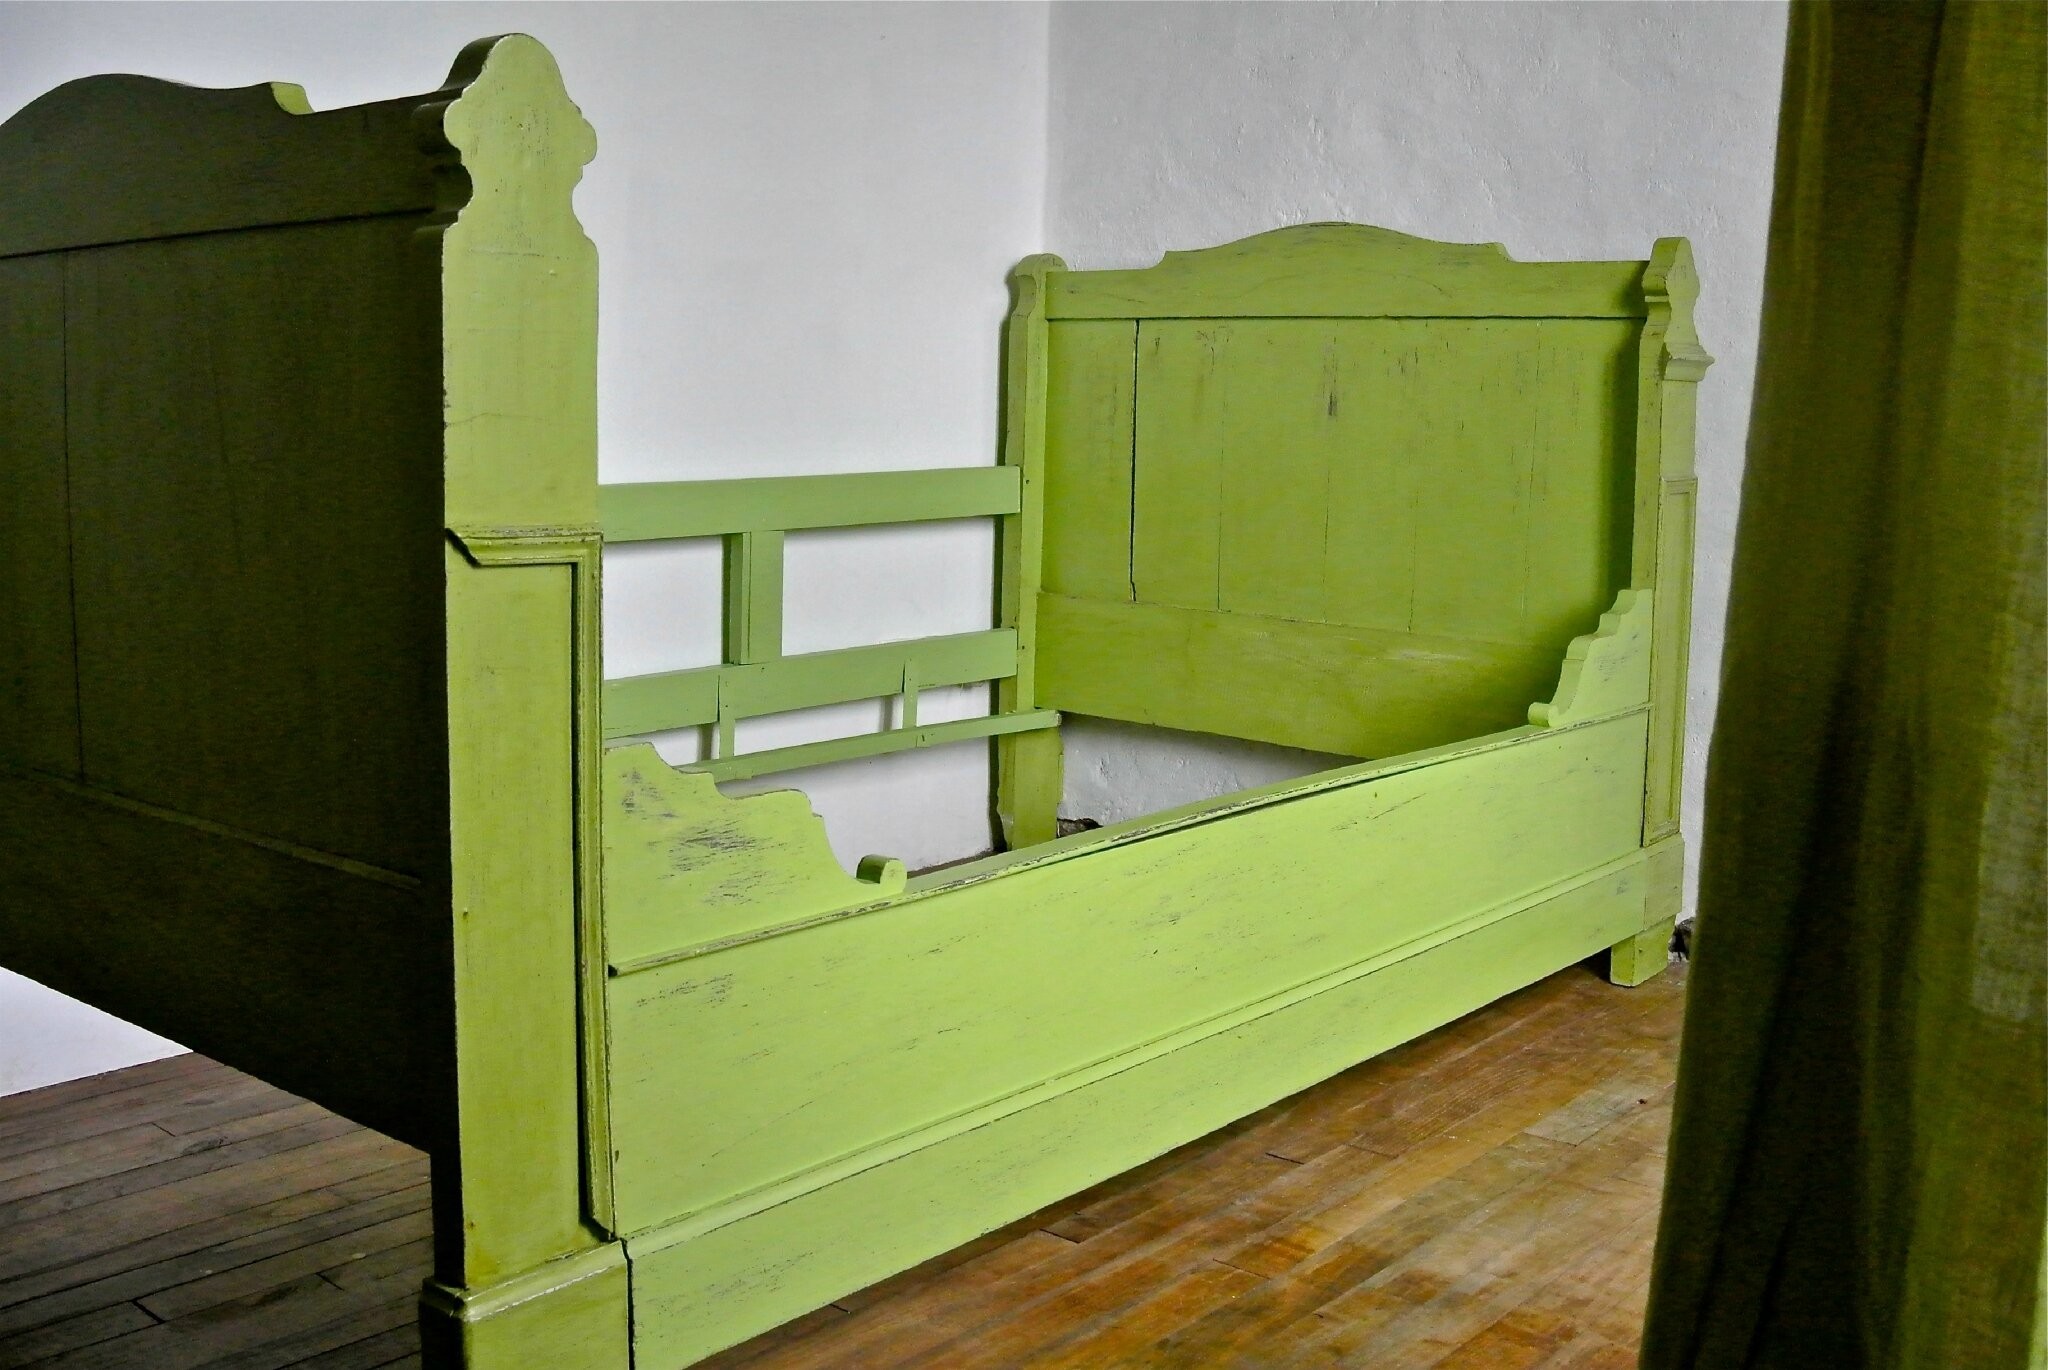 lit patin dormir au vert barbatruc et r cup. Black Bedroom Furniture Sets. Home Design Ideas